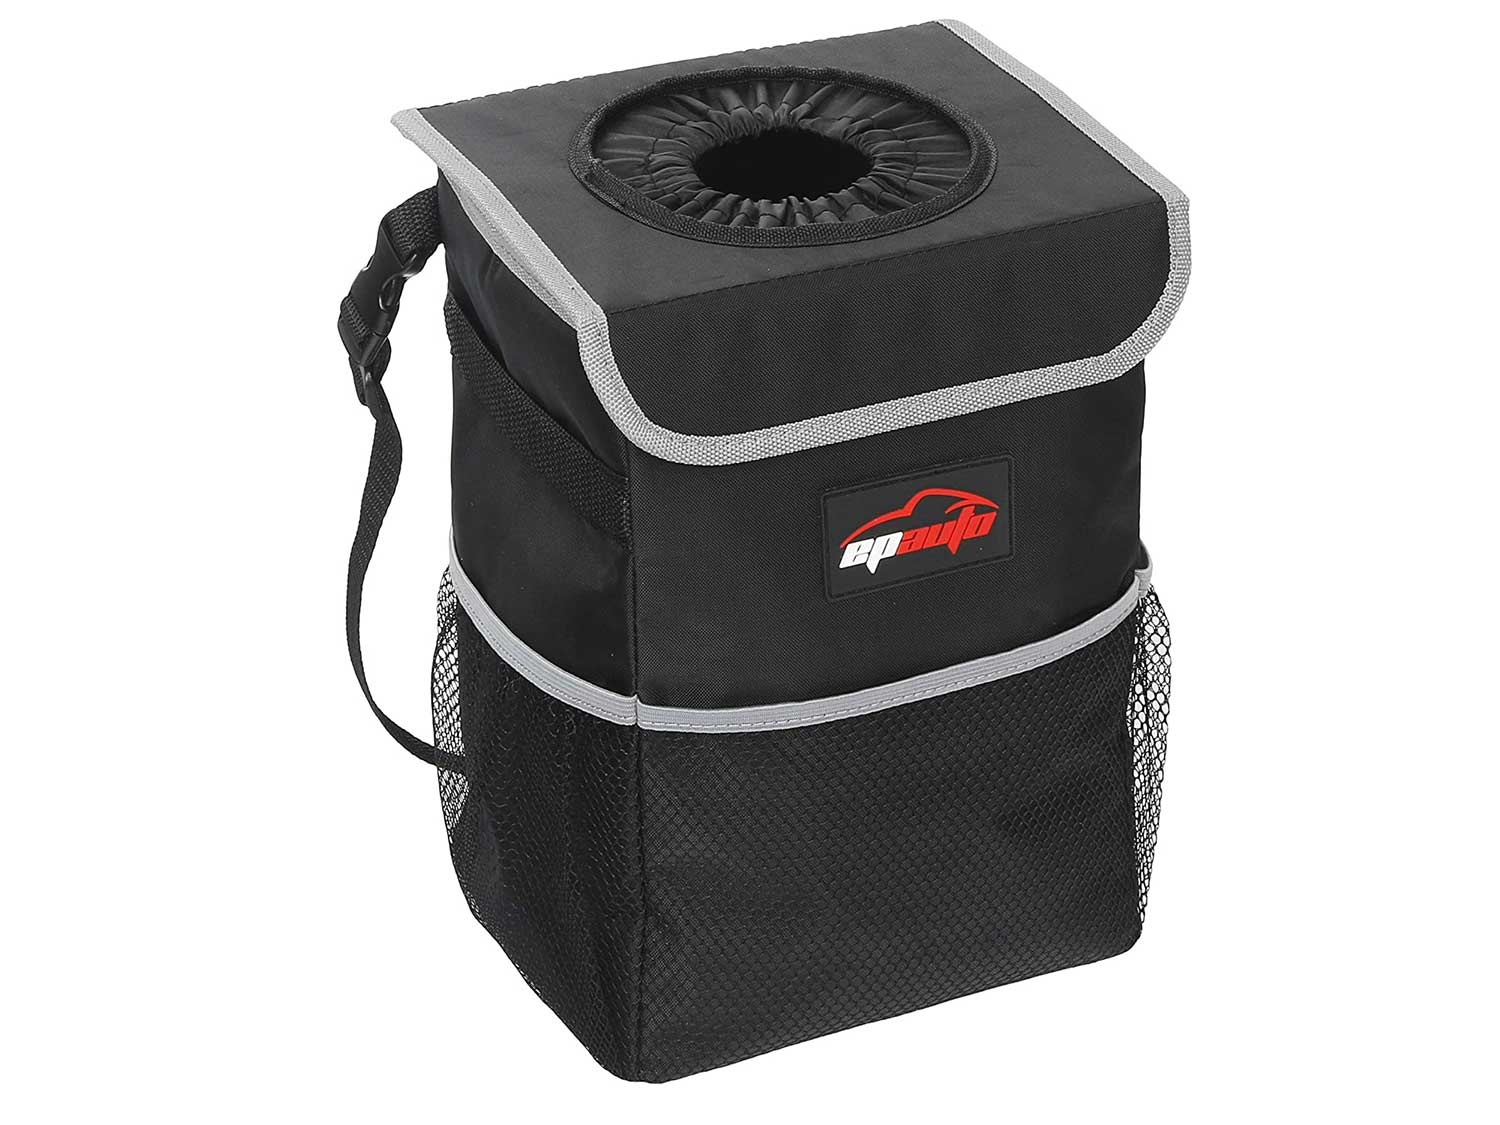 EPAuto Waterproof Car Trash Can with Lid and Storage Pockets, Black